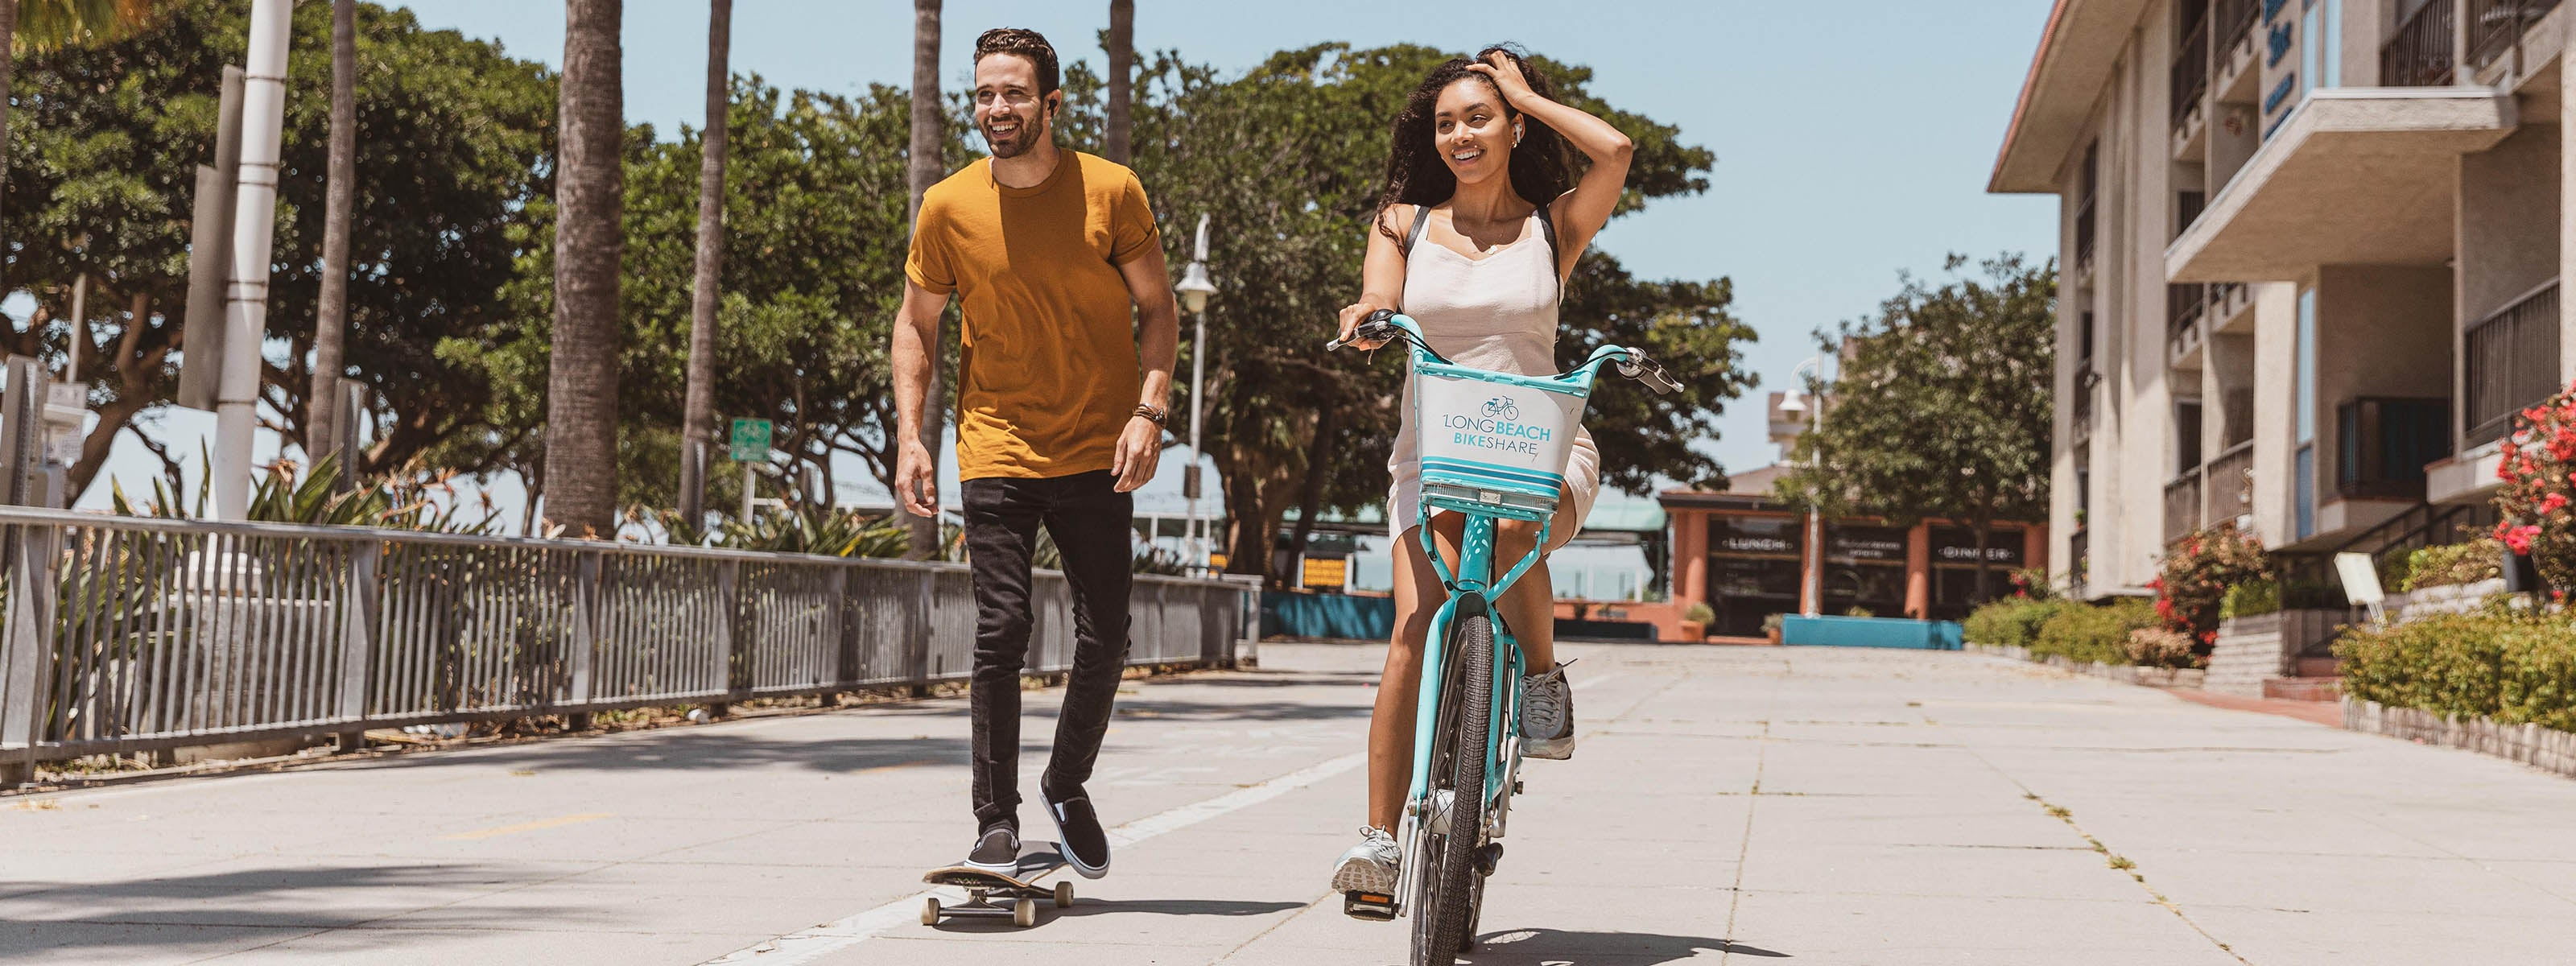 girl biking and guy skateboarding